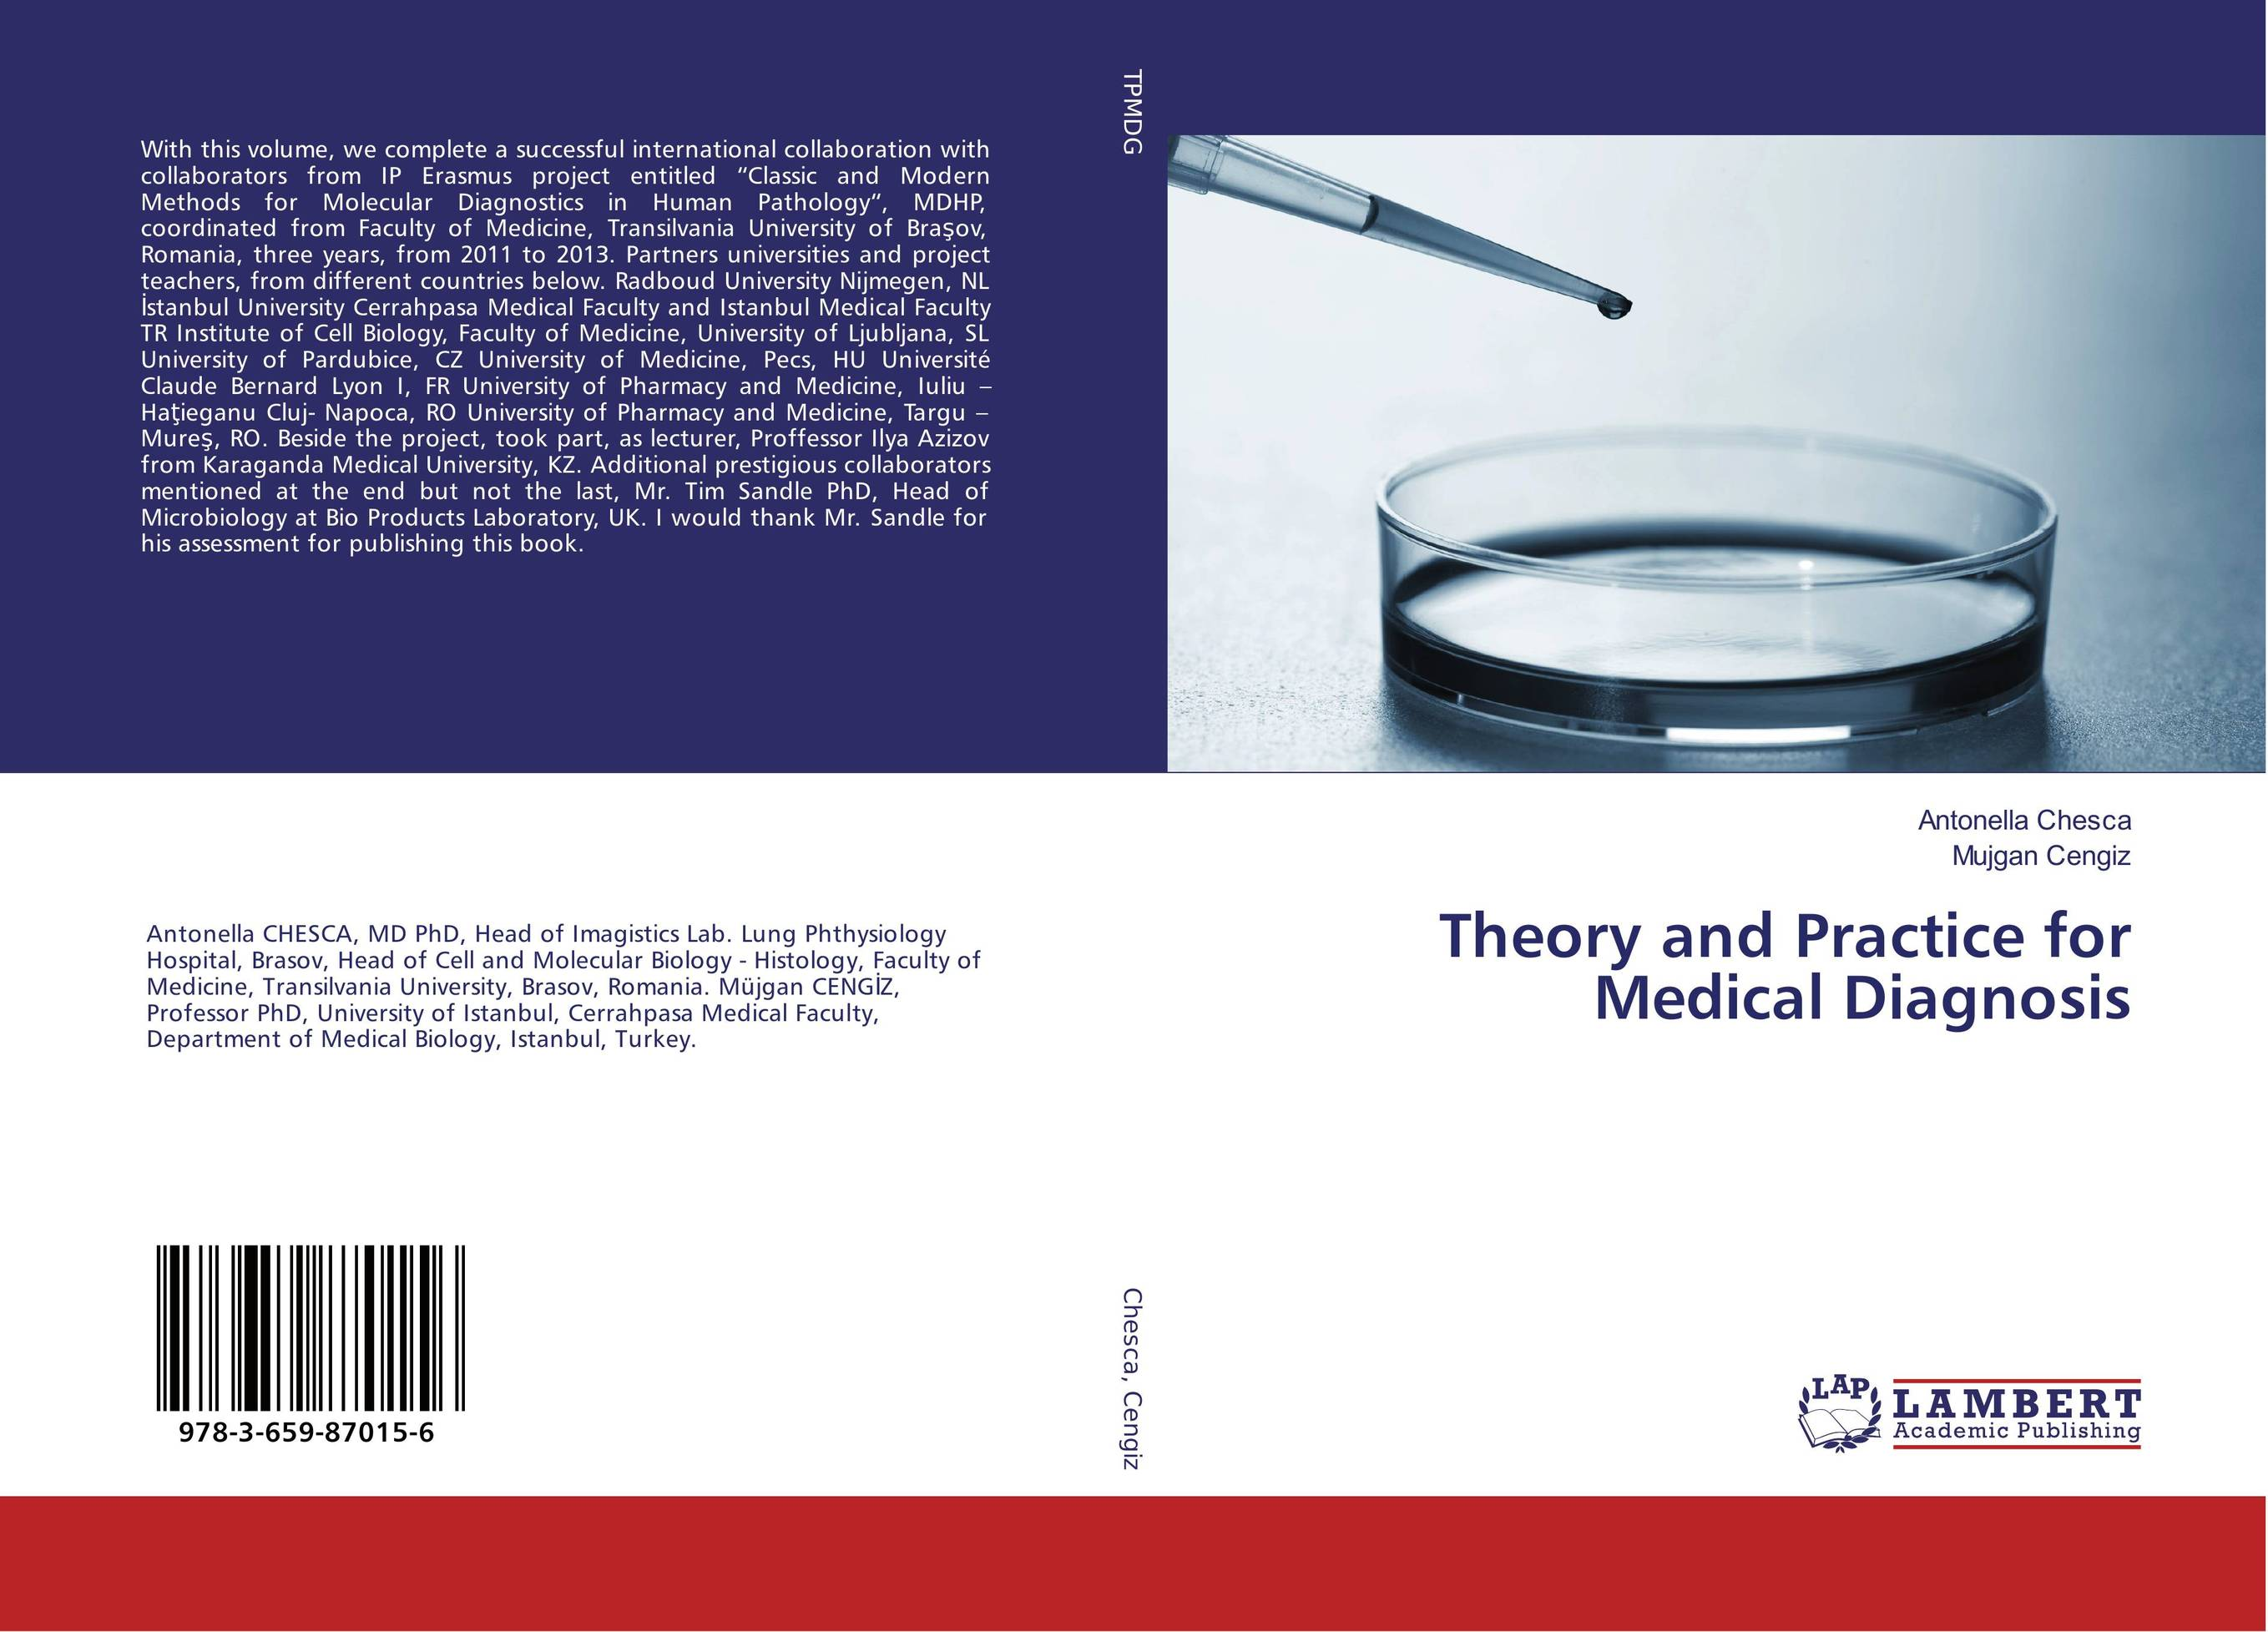 Theory and Practice for Medical Diagnosis fundamentals of medical microbiology volume i